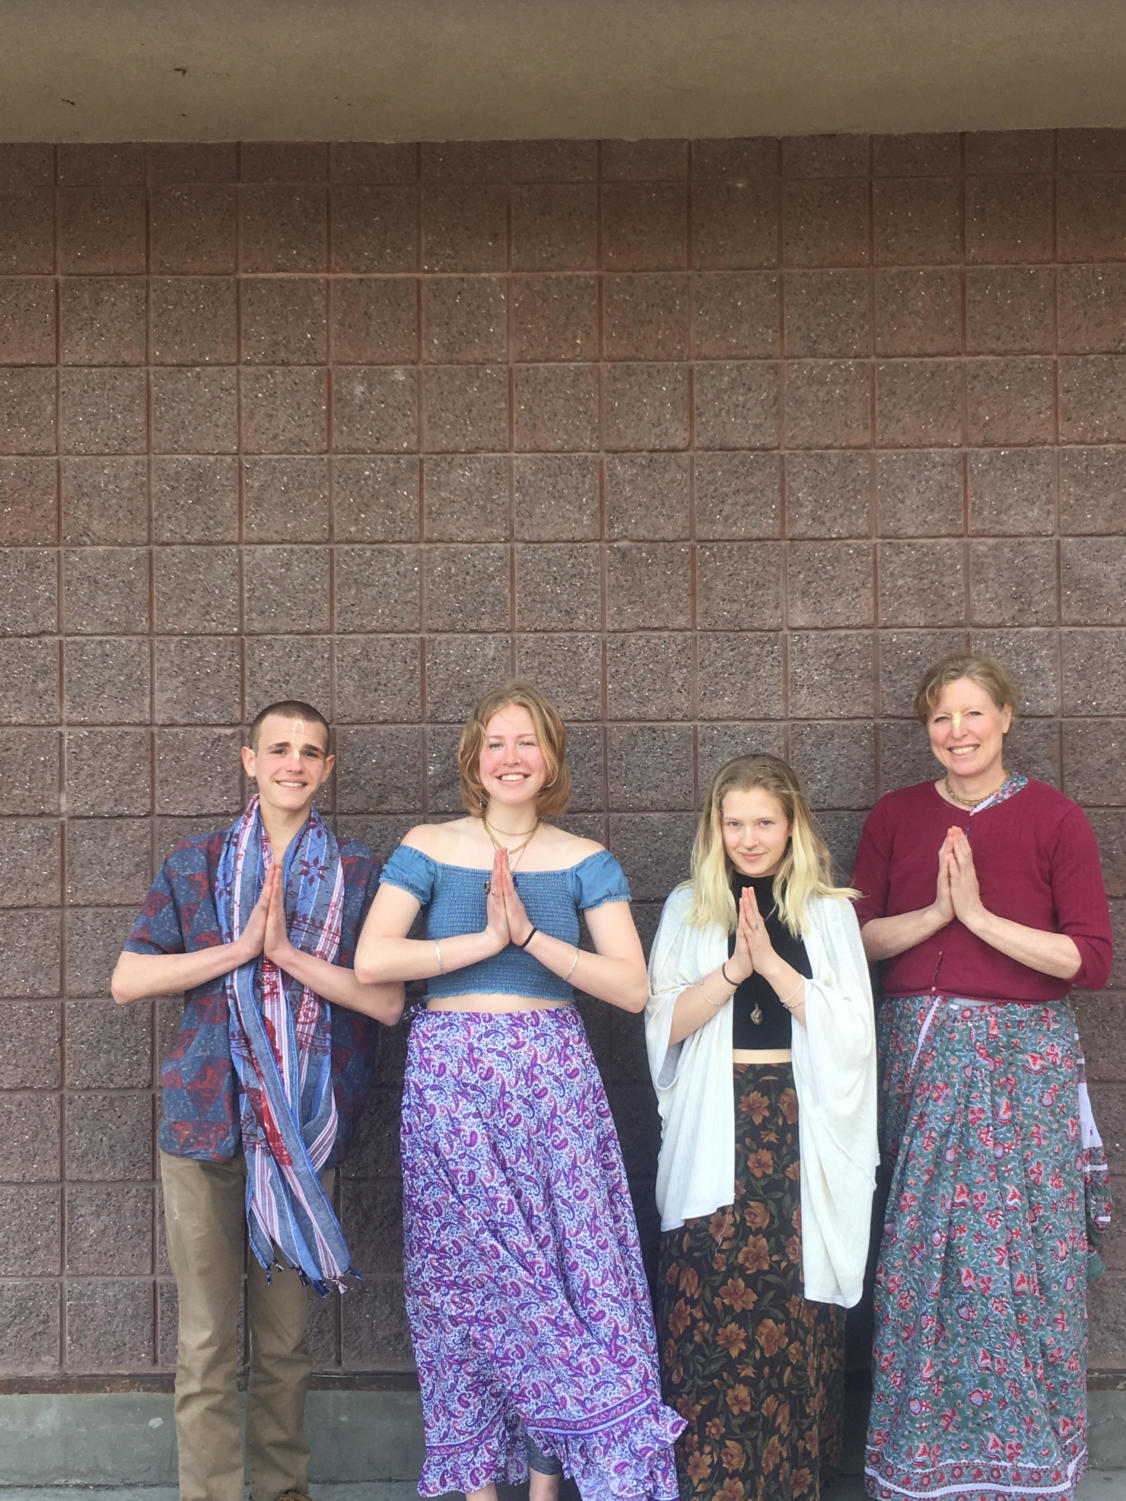 Shyamamohini Diana, pictured second, her mother, far right, and the two co-heads of the Bhakti Yoga club stand in front of the school in prayer pose.